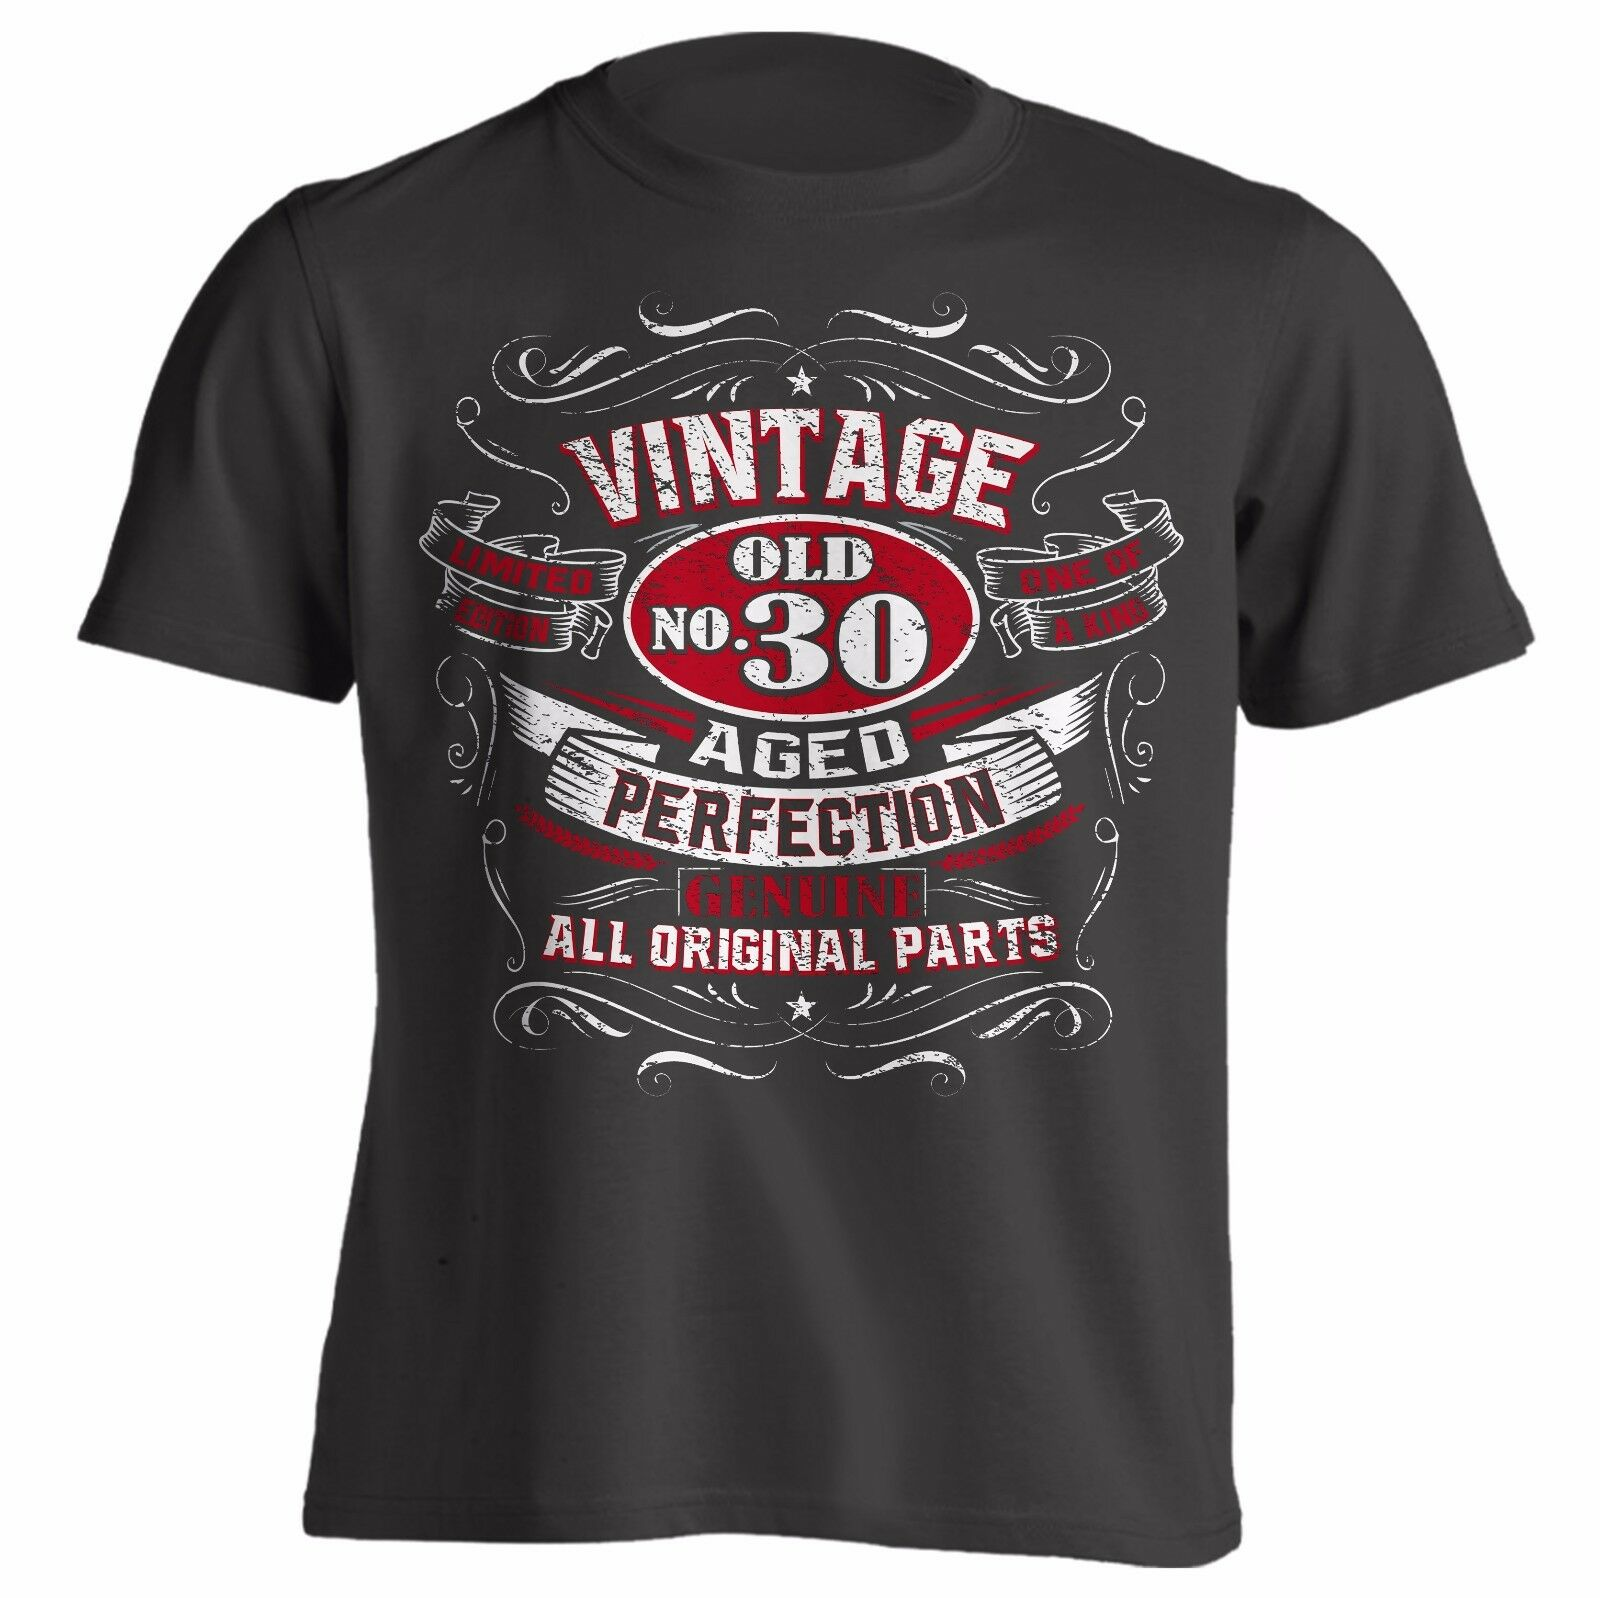 1979 1989 1999 Vintage Aged Perfection <font><b>Birthday</b></font> Gift Shirt Great Gift <font><b>Idea</b></font> for <font><b>Men</b></font> 20Th 30Th <font><b>40Th</b></font> 2019 Design <font><b>Men</b></font> Summer T-Shirt image